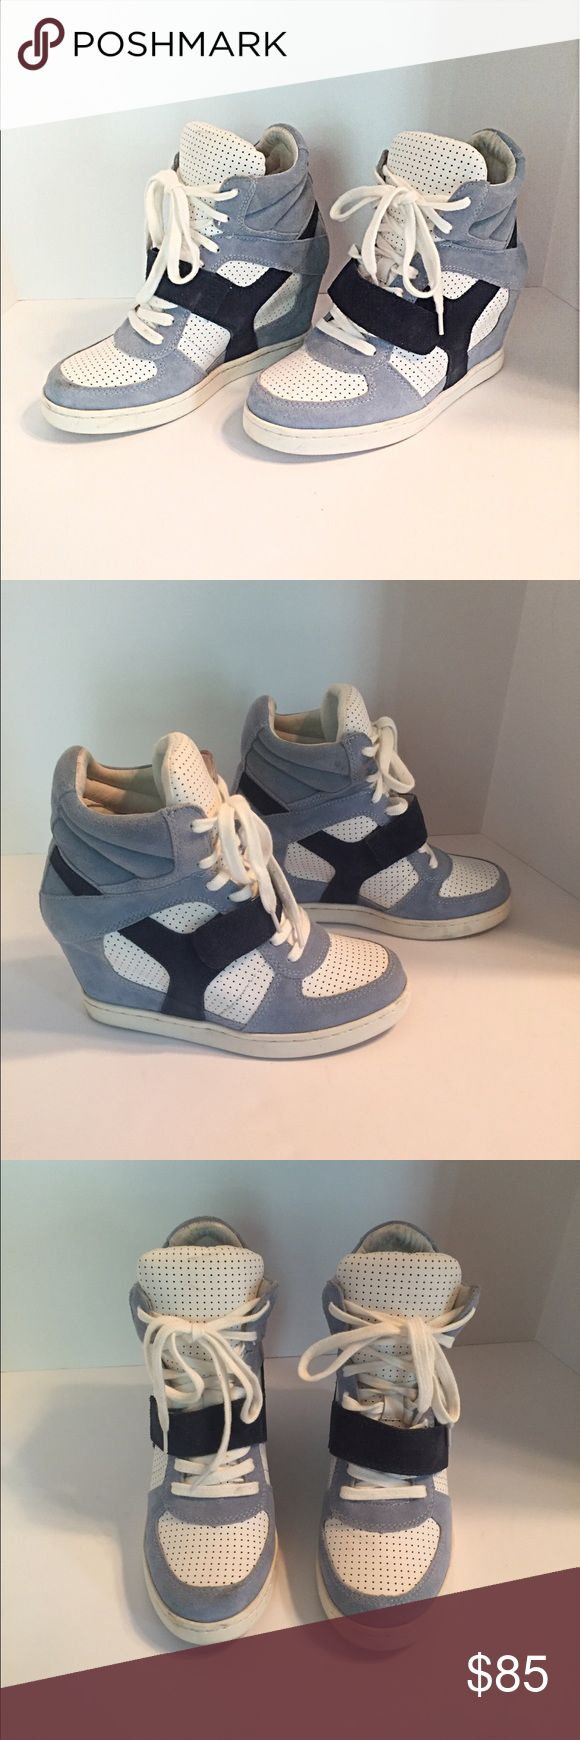 "Ash Sky Blue Suede & White Wedge Sneakers Casual cool wedge sneakers. Light blue and navy suede with perforated white leather. Lace up with a single grip strap and covered 3.5"" wedge heel. Euro size 38 Ash Shoes Sneakers"